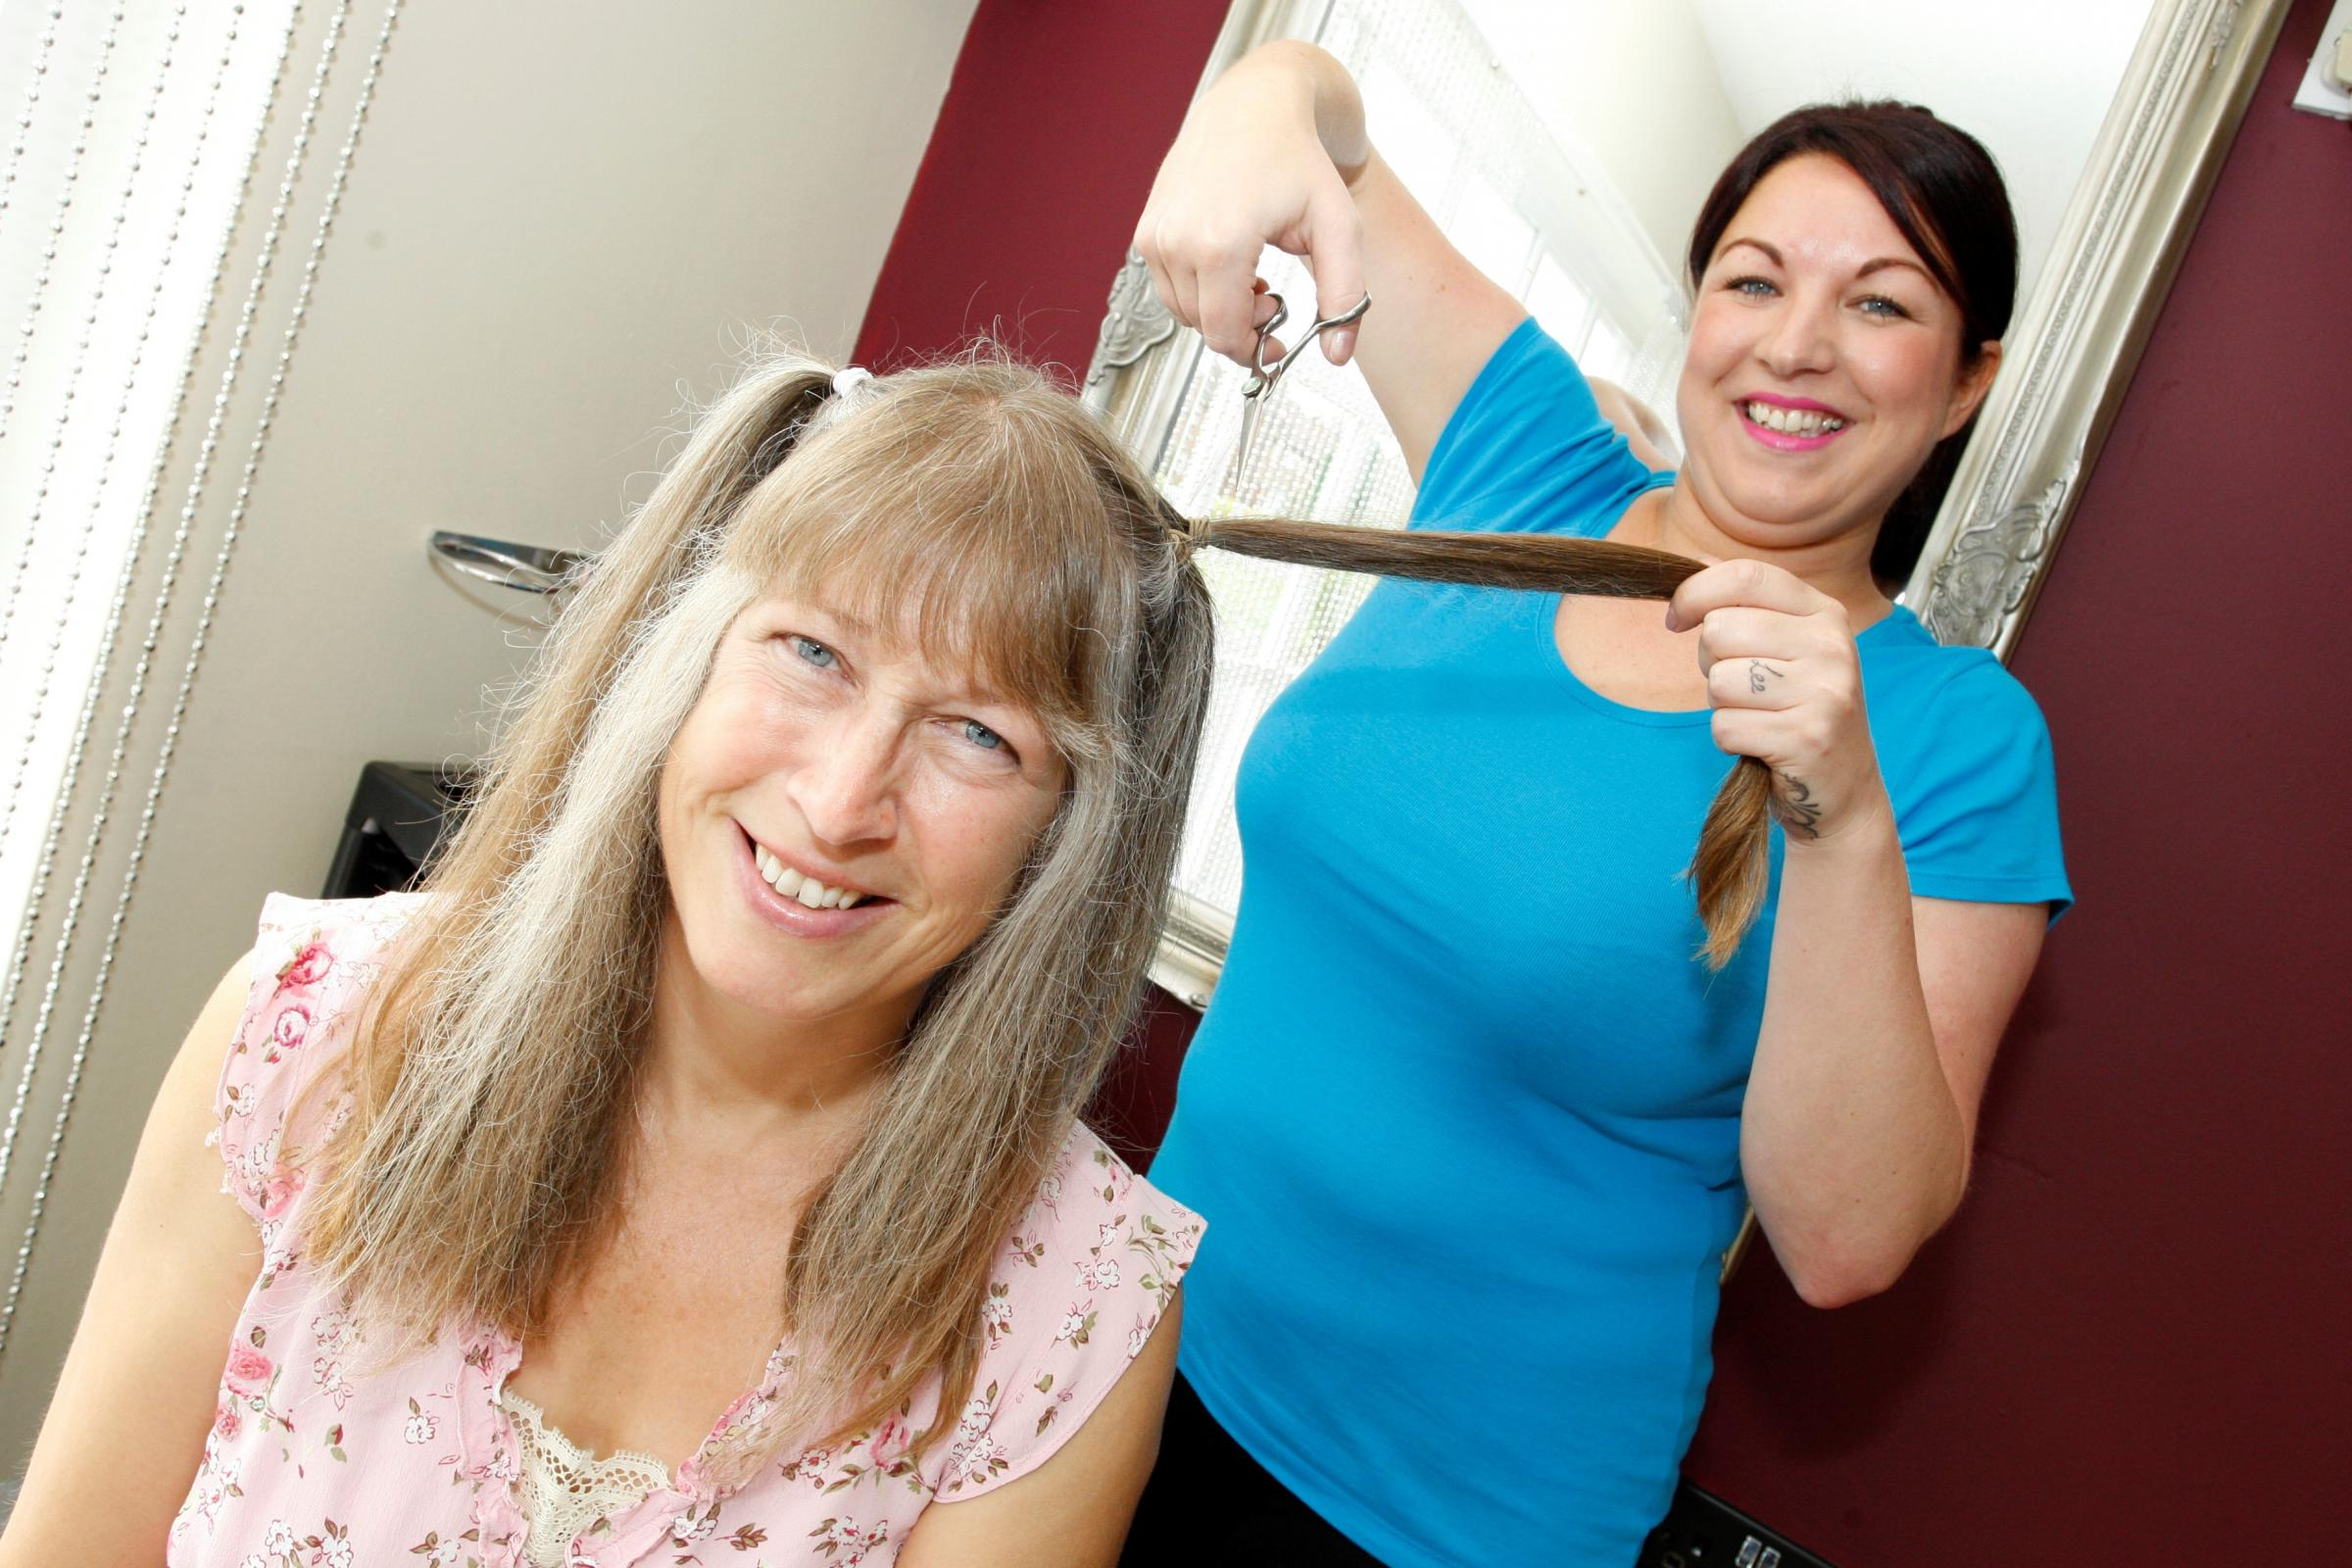 Droitwich woman crops hair for charity